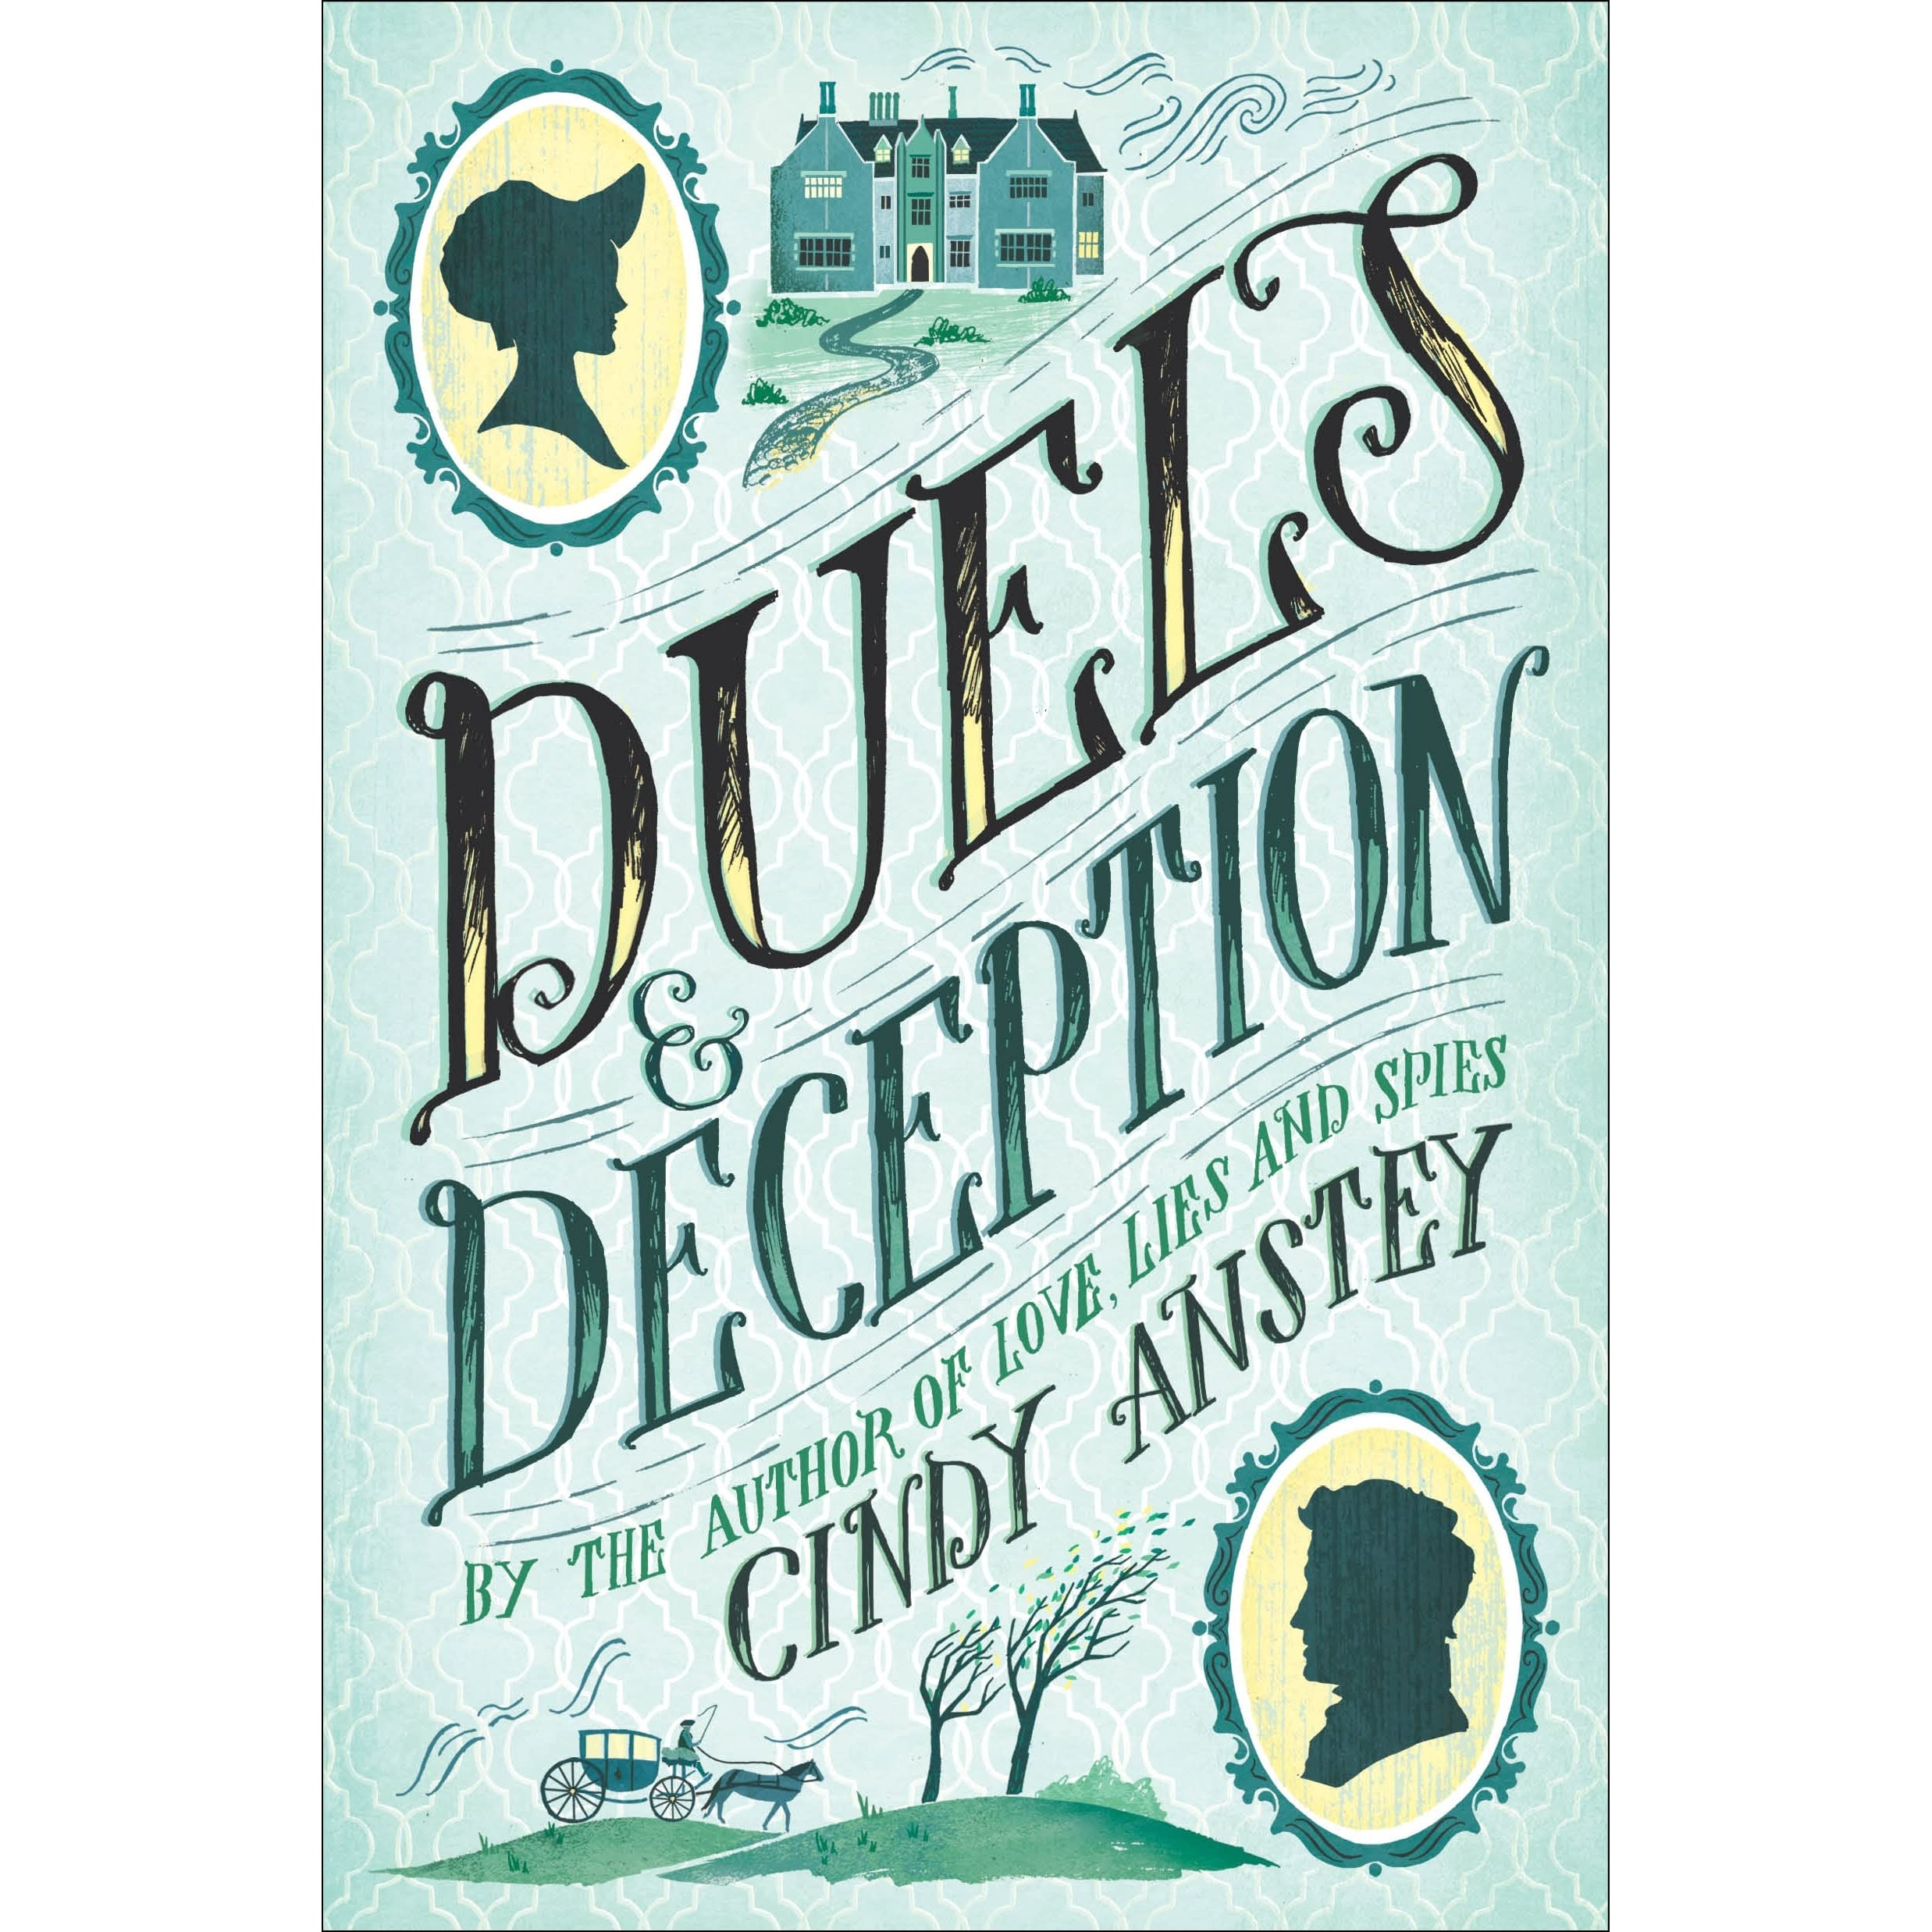 Love Deception: Duels And Deception By Cindy Anstey